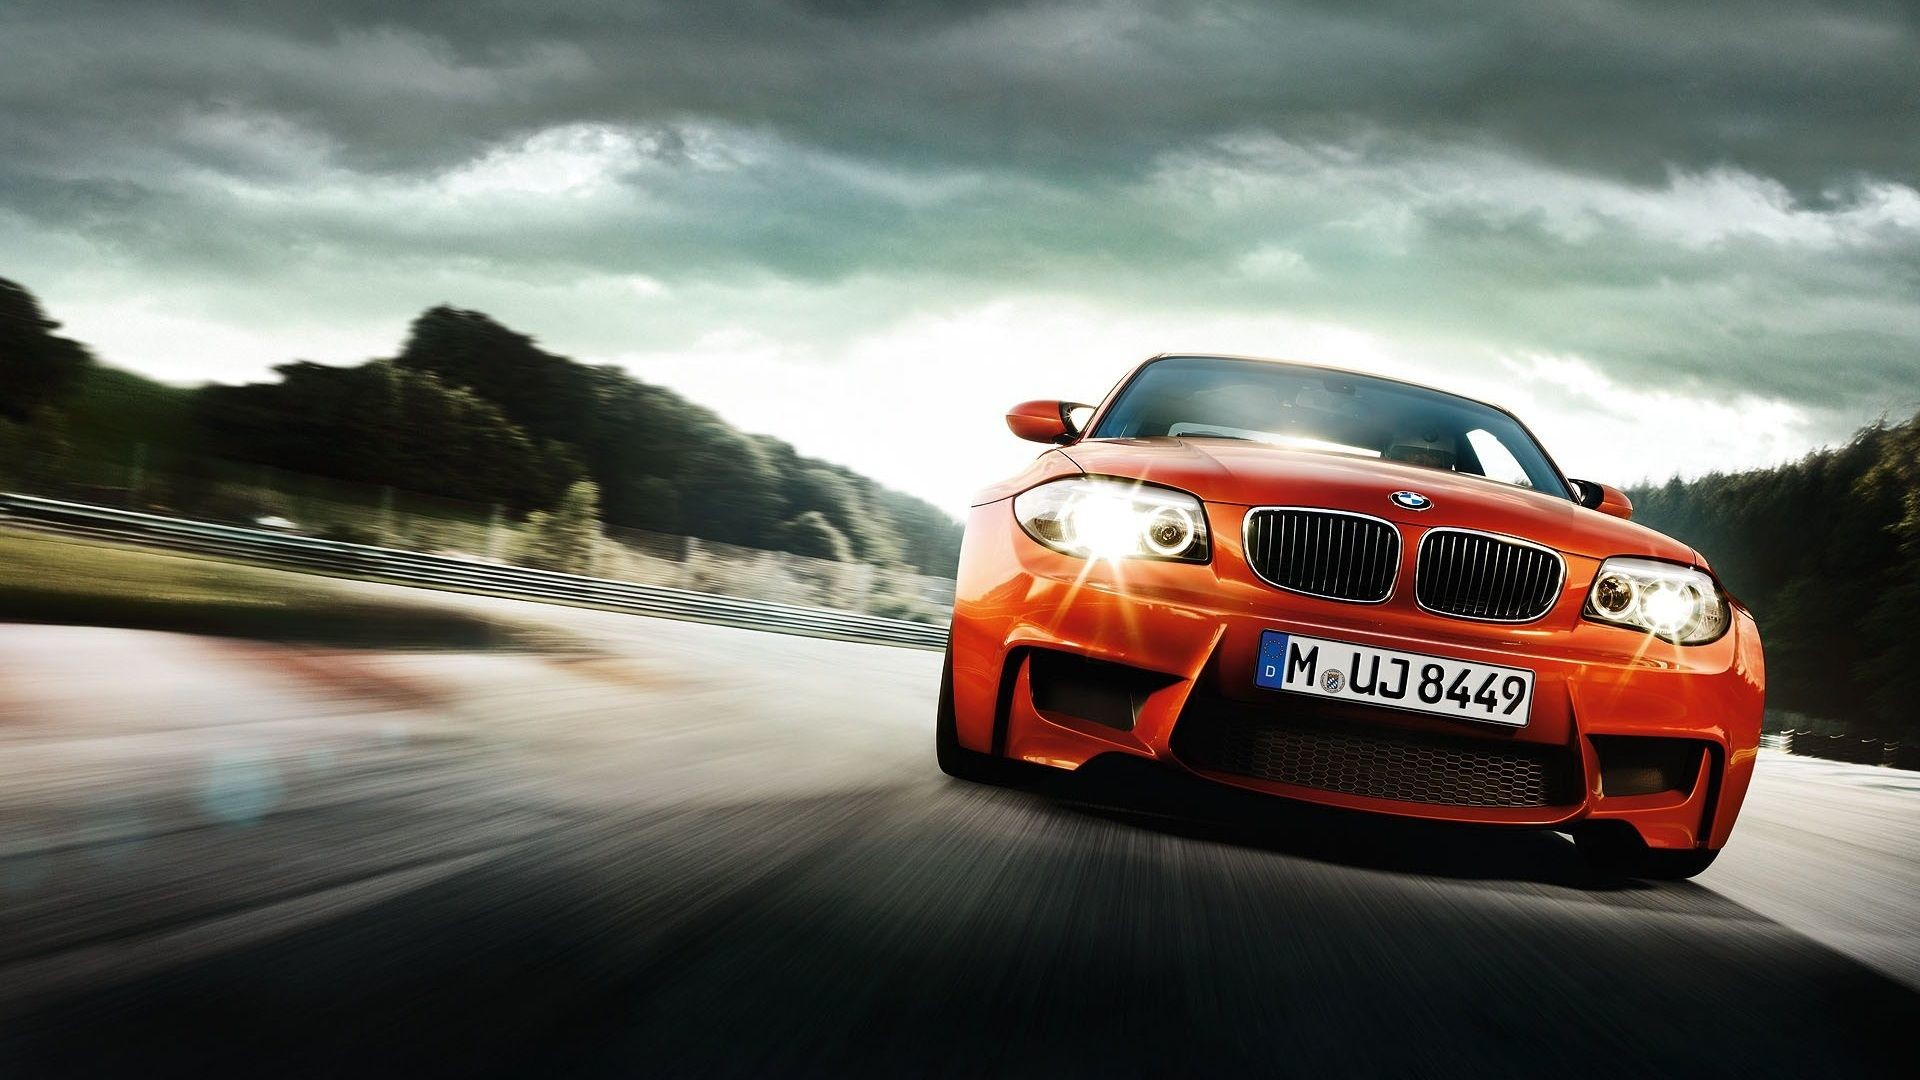 1920x1080 Excellent Car Live Wallpaper For Pc To Images N5fl And Car Live Wallpaper New At